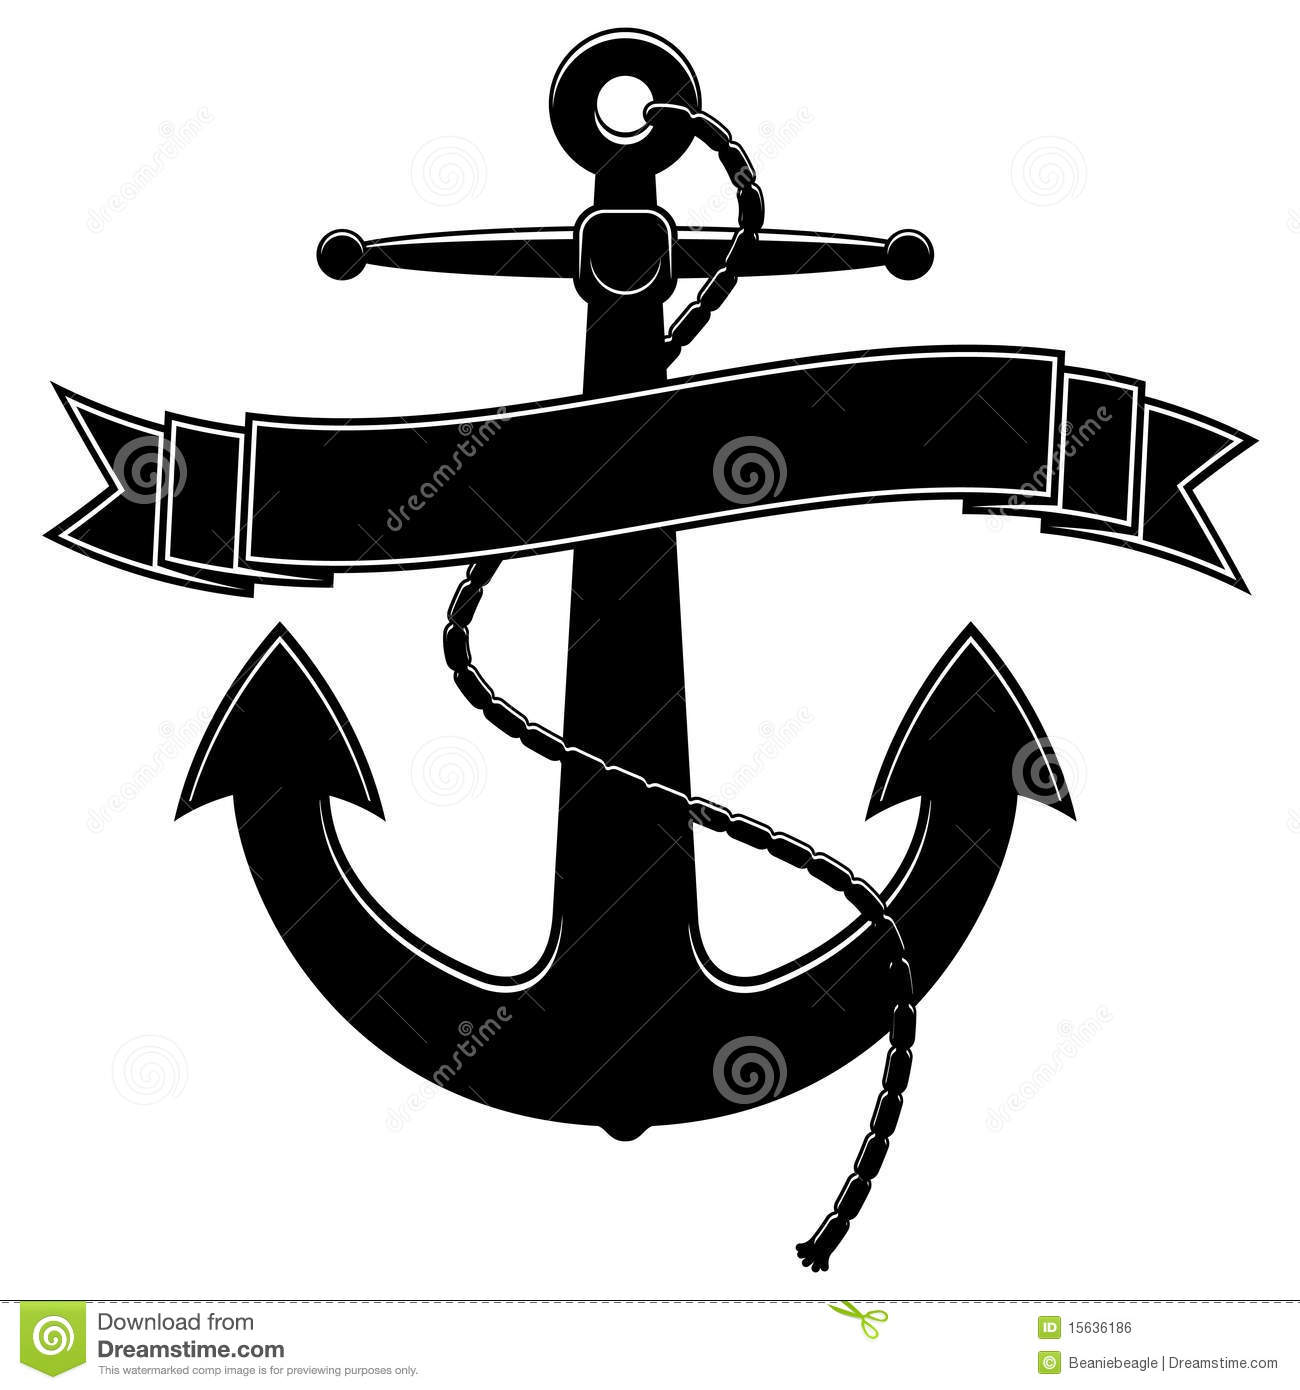 It is a graphic of Monster Printable Anchor Template